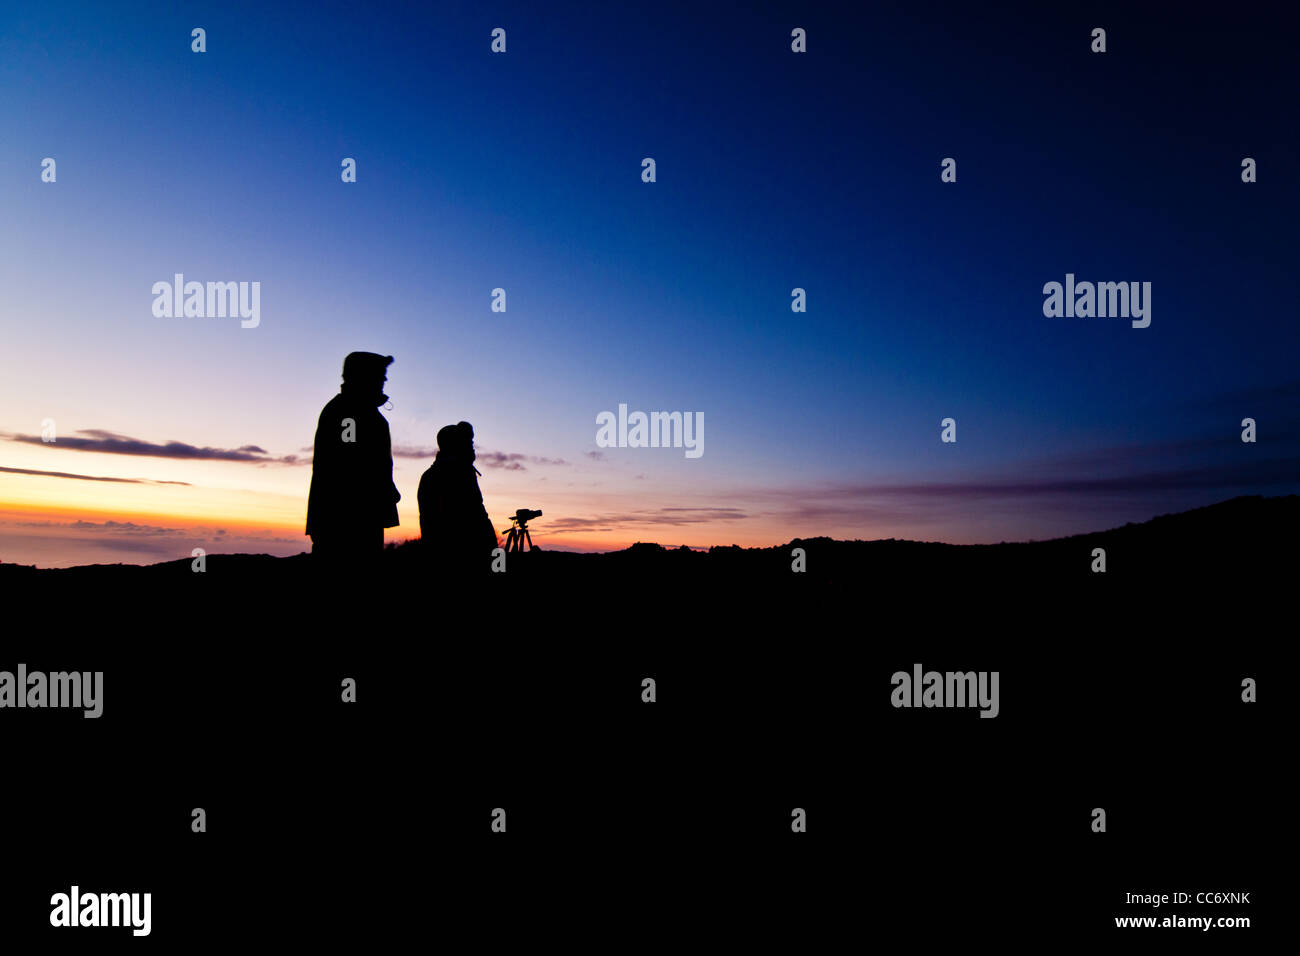 People Silouettes on Sunset, Etna - Stock Image